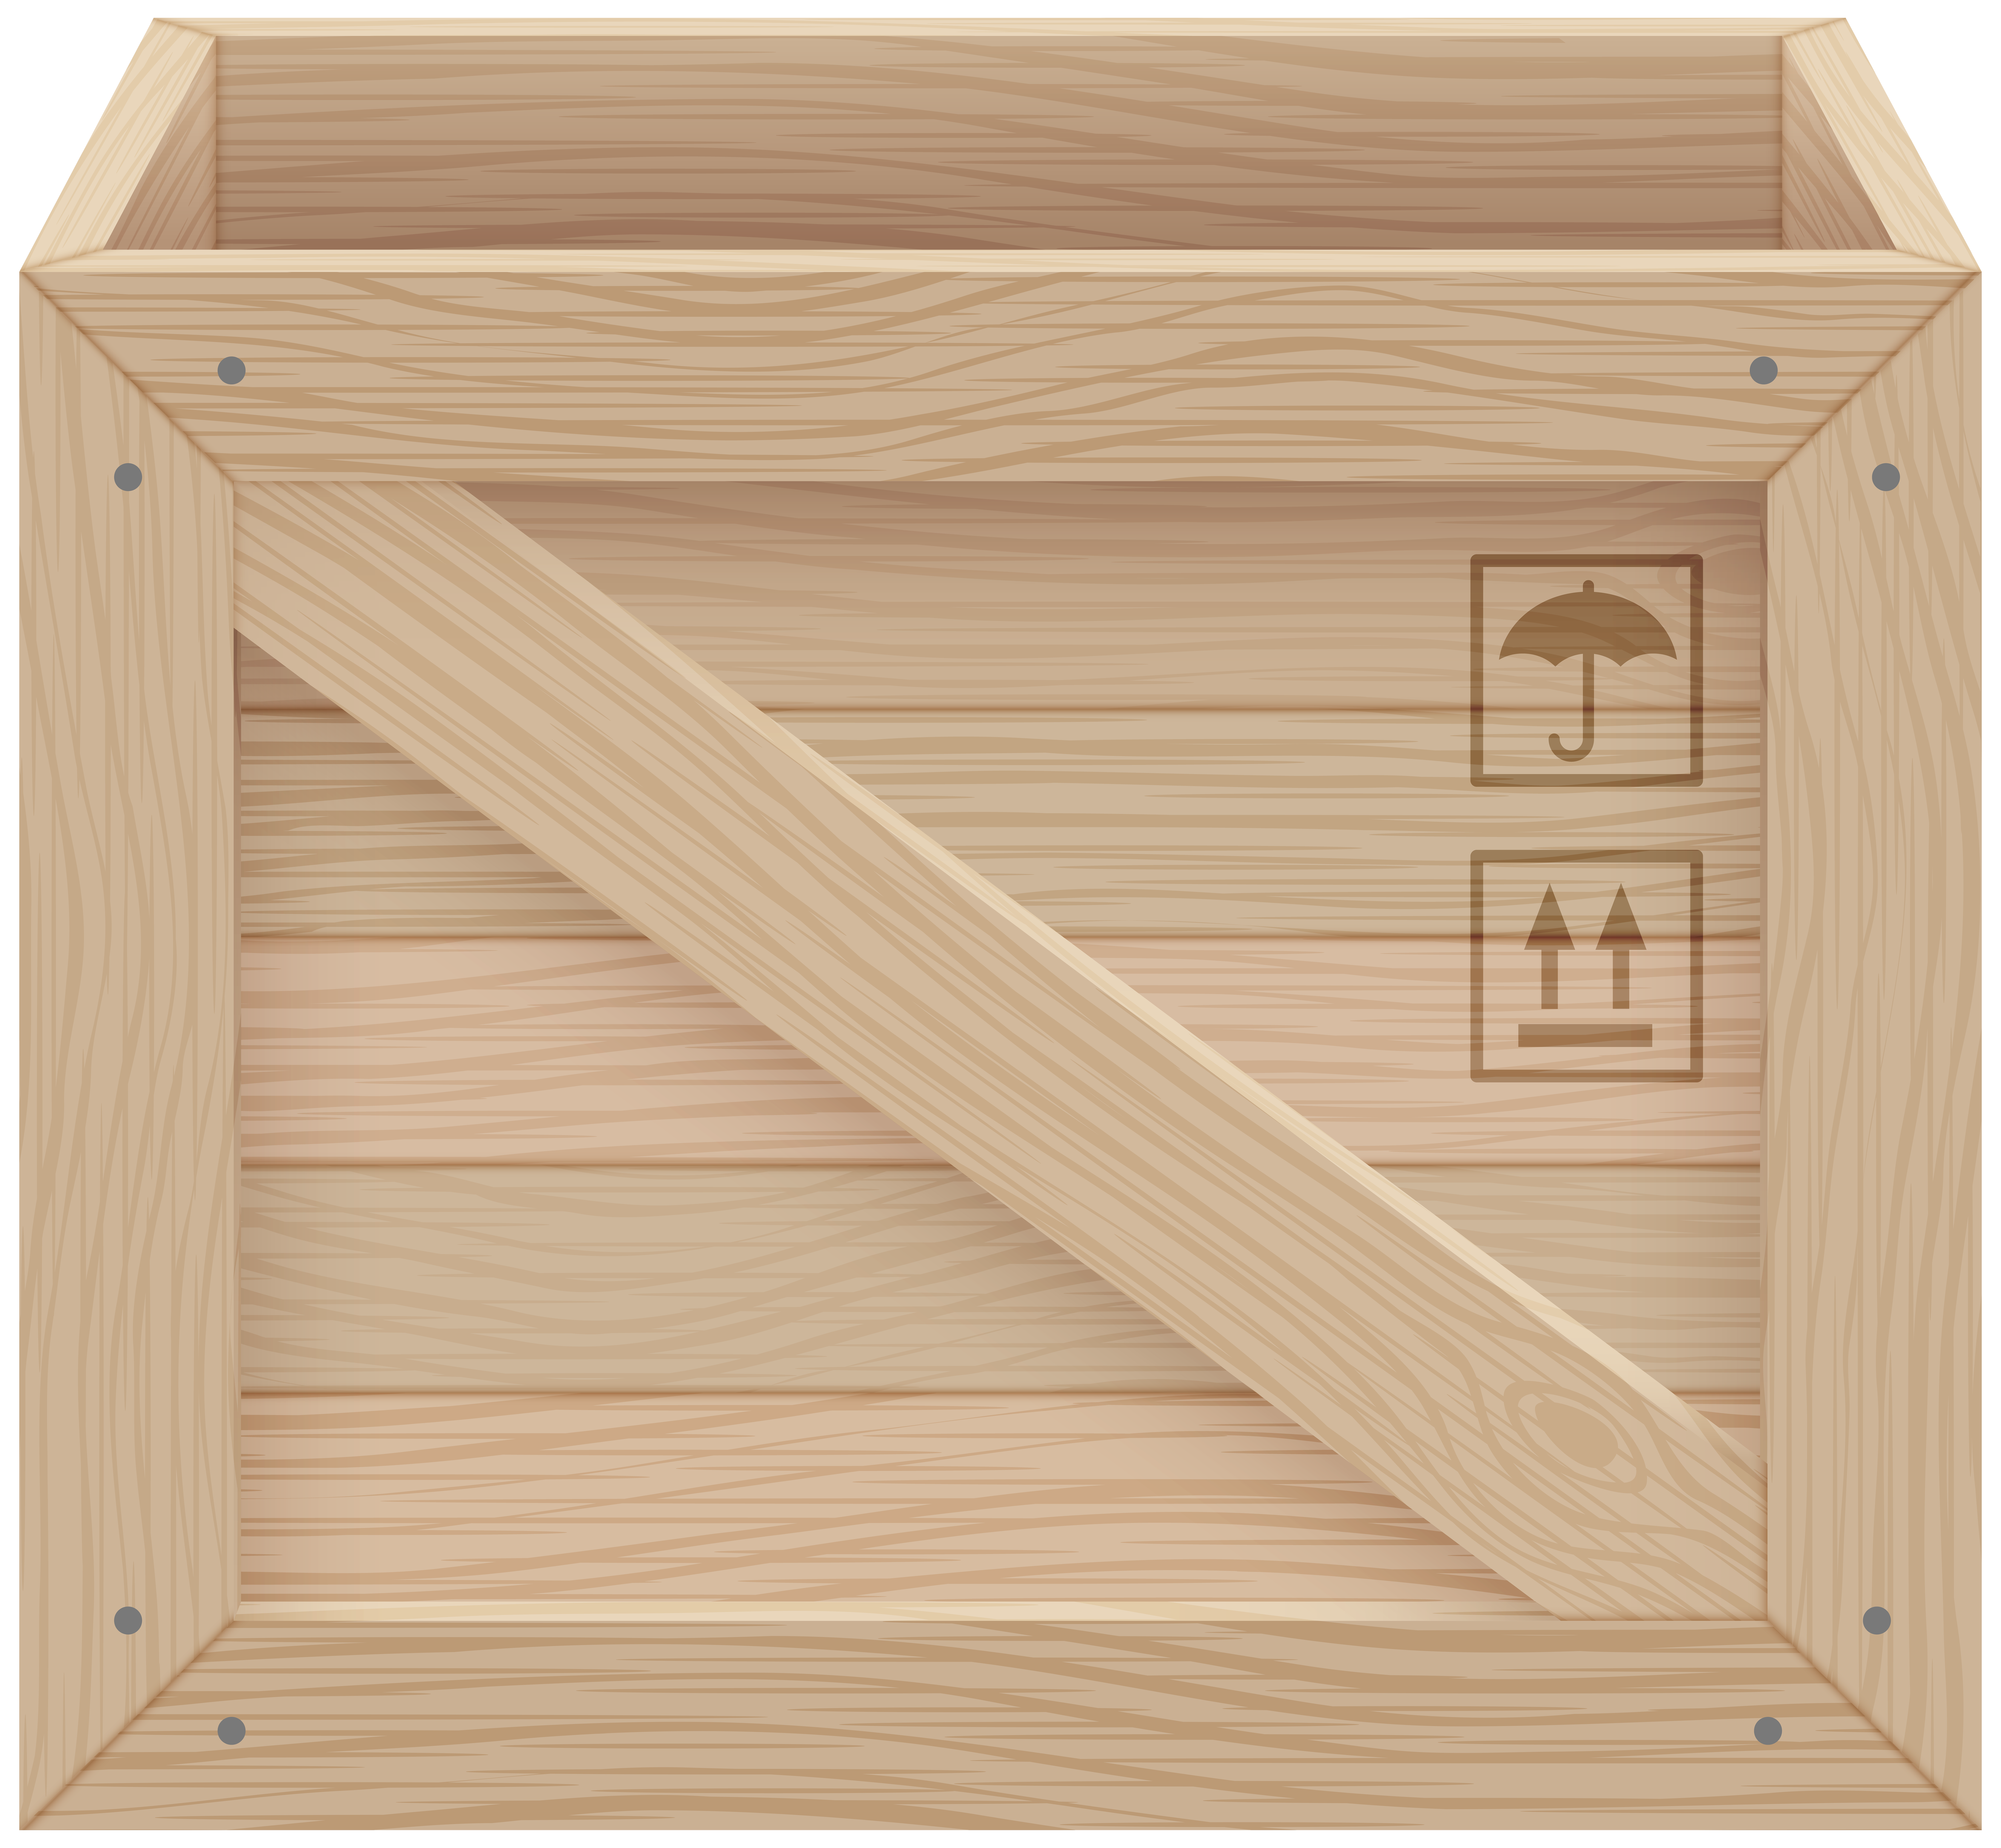 Wood animal crate clipart vector free library Wooden Crate PNG Clip Art - Best WEB Clipart vector free library